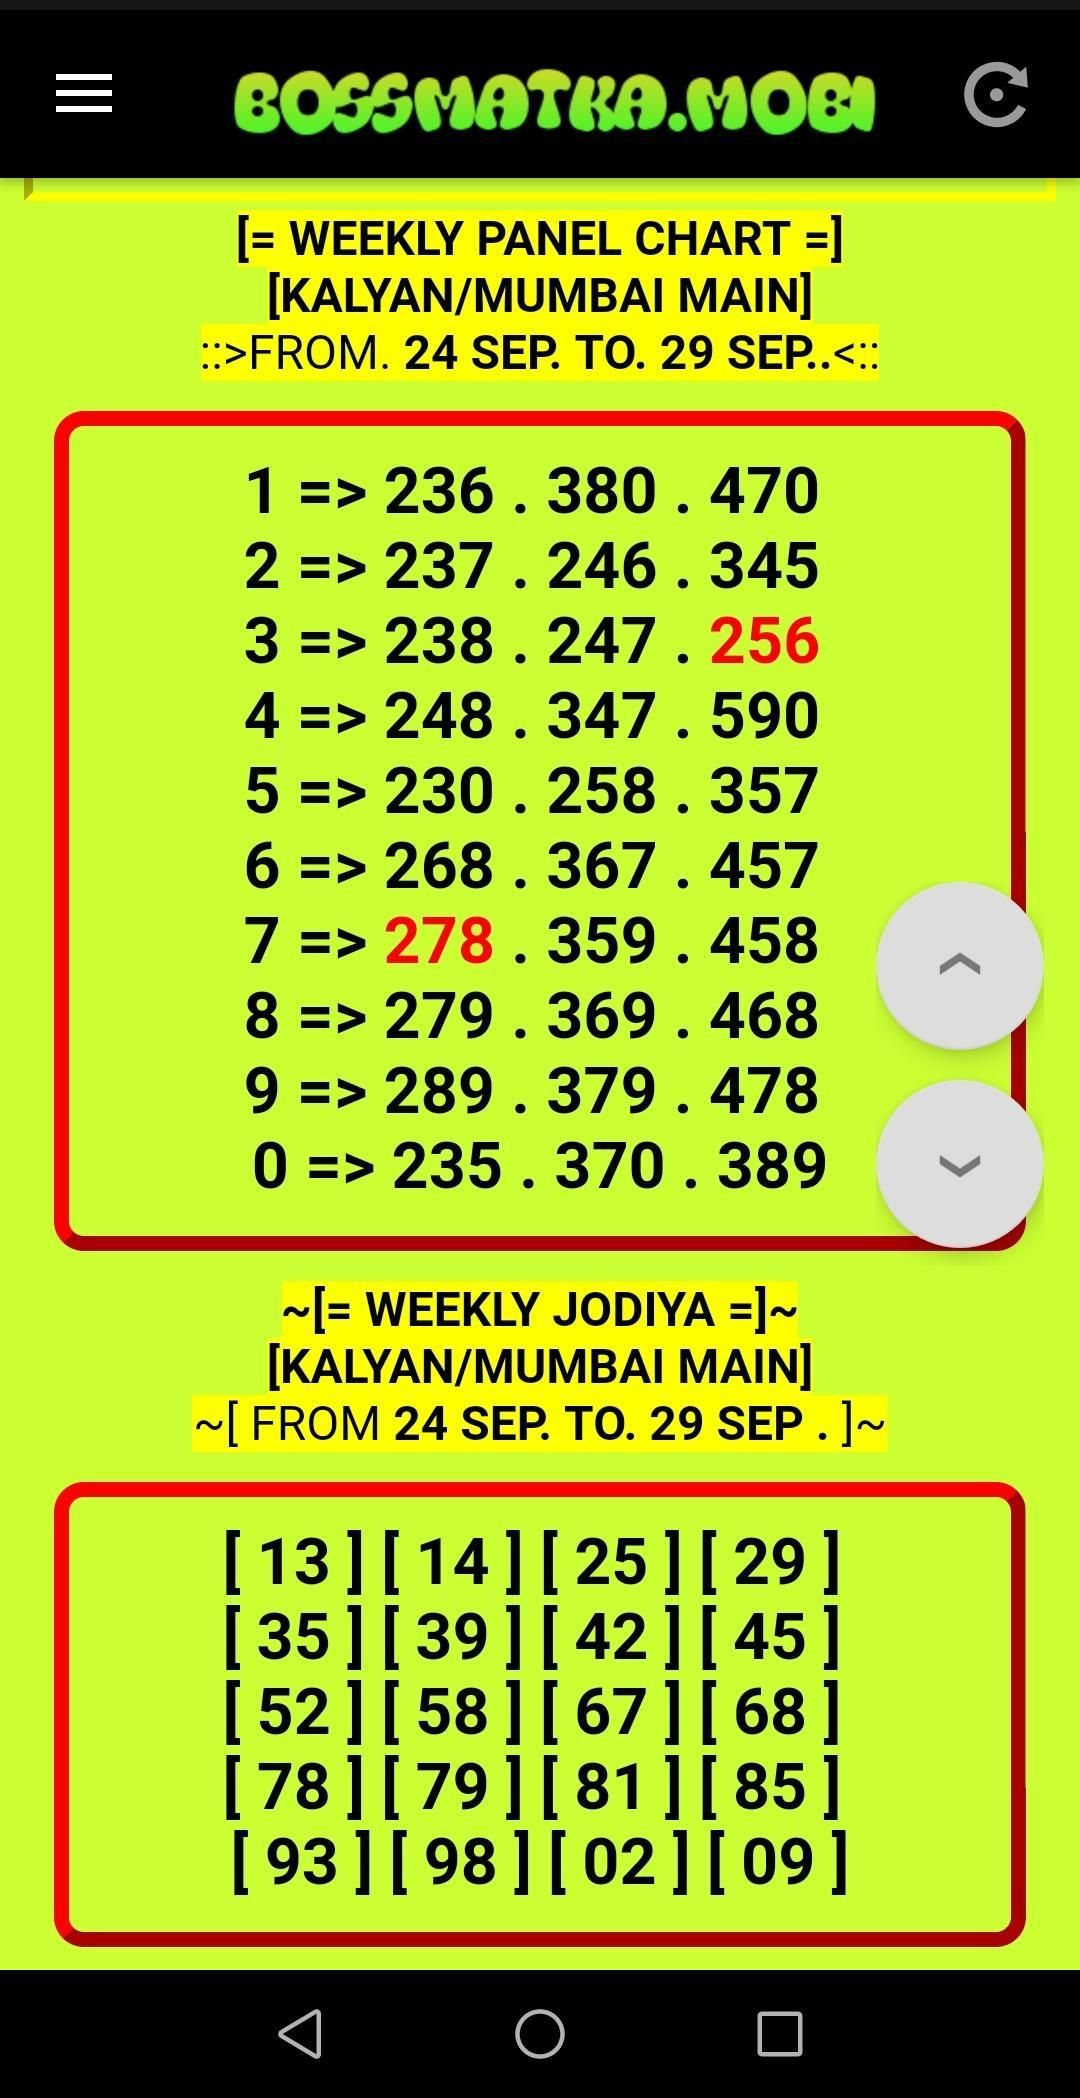 Kalyan live matka result kalyan live matka result how to